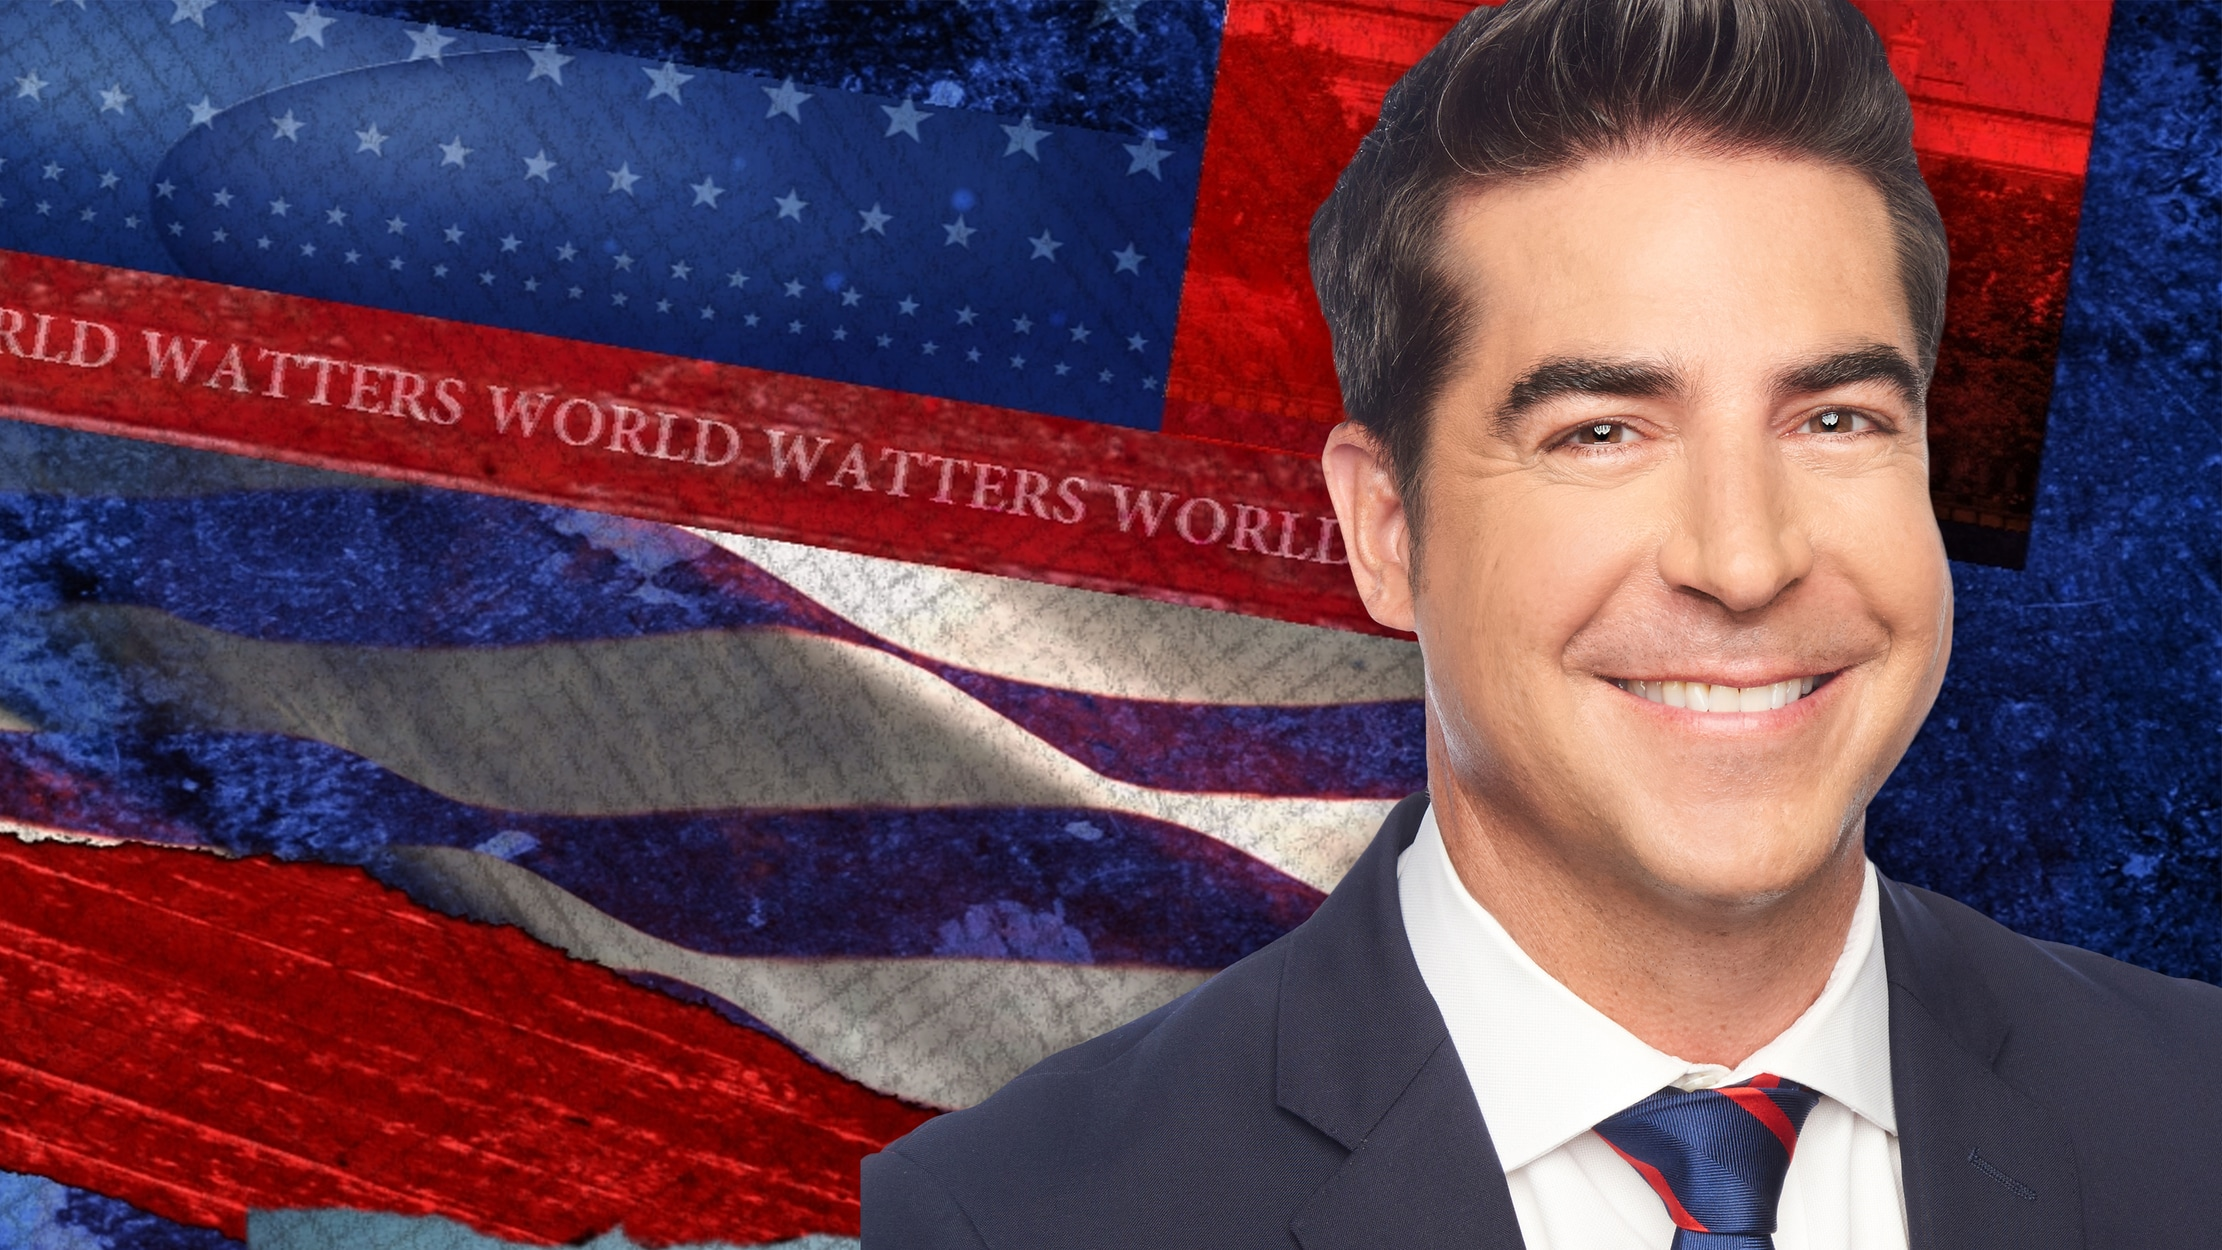 Watters' World seriesDetail